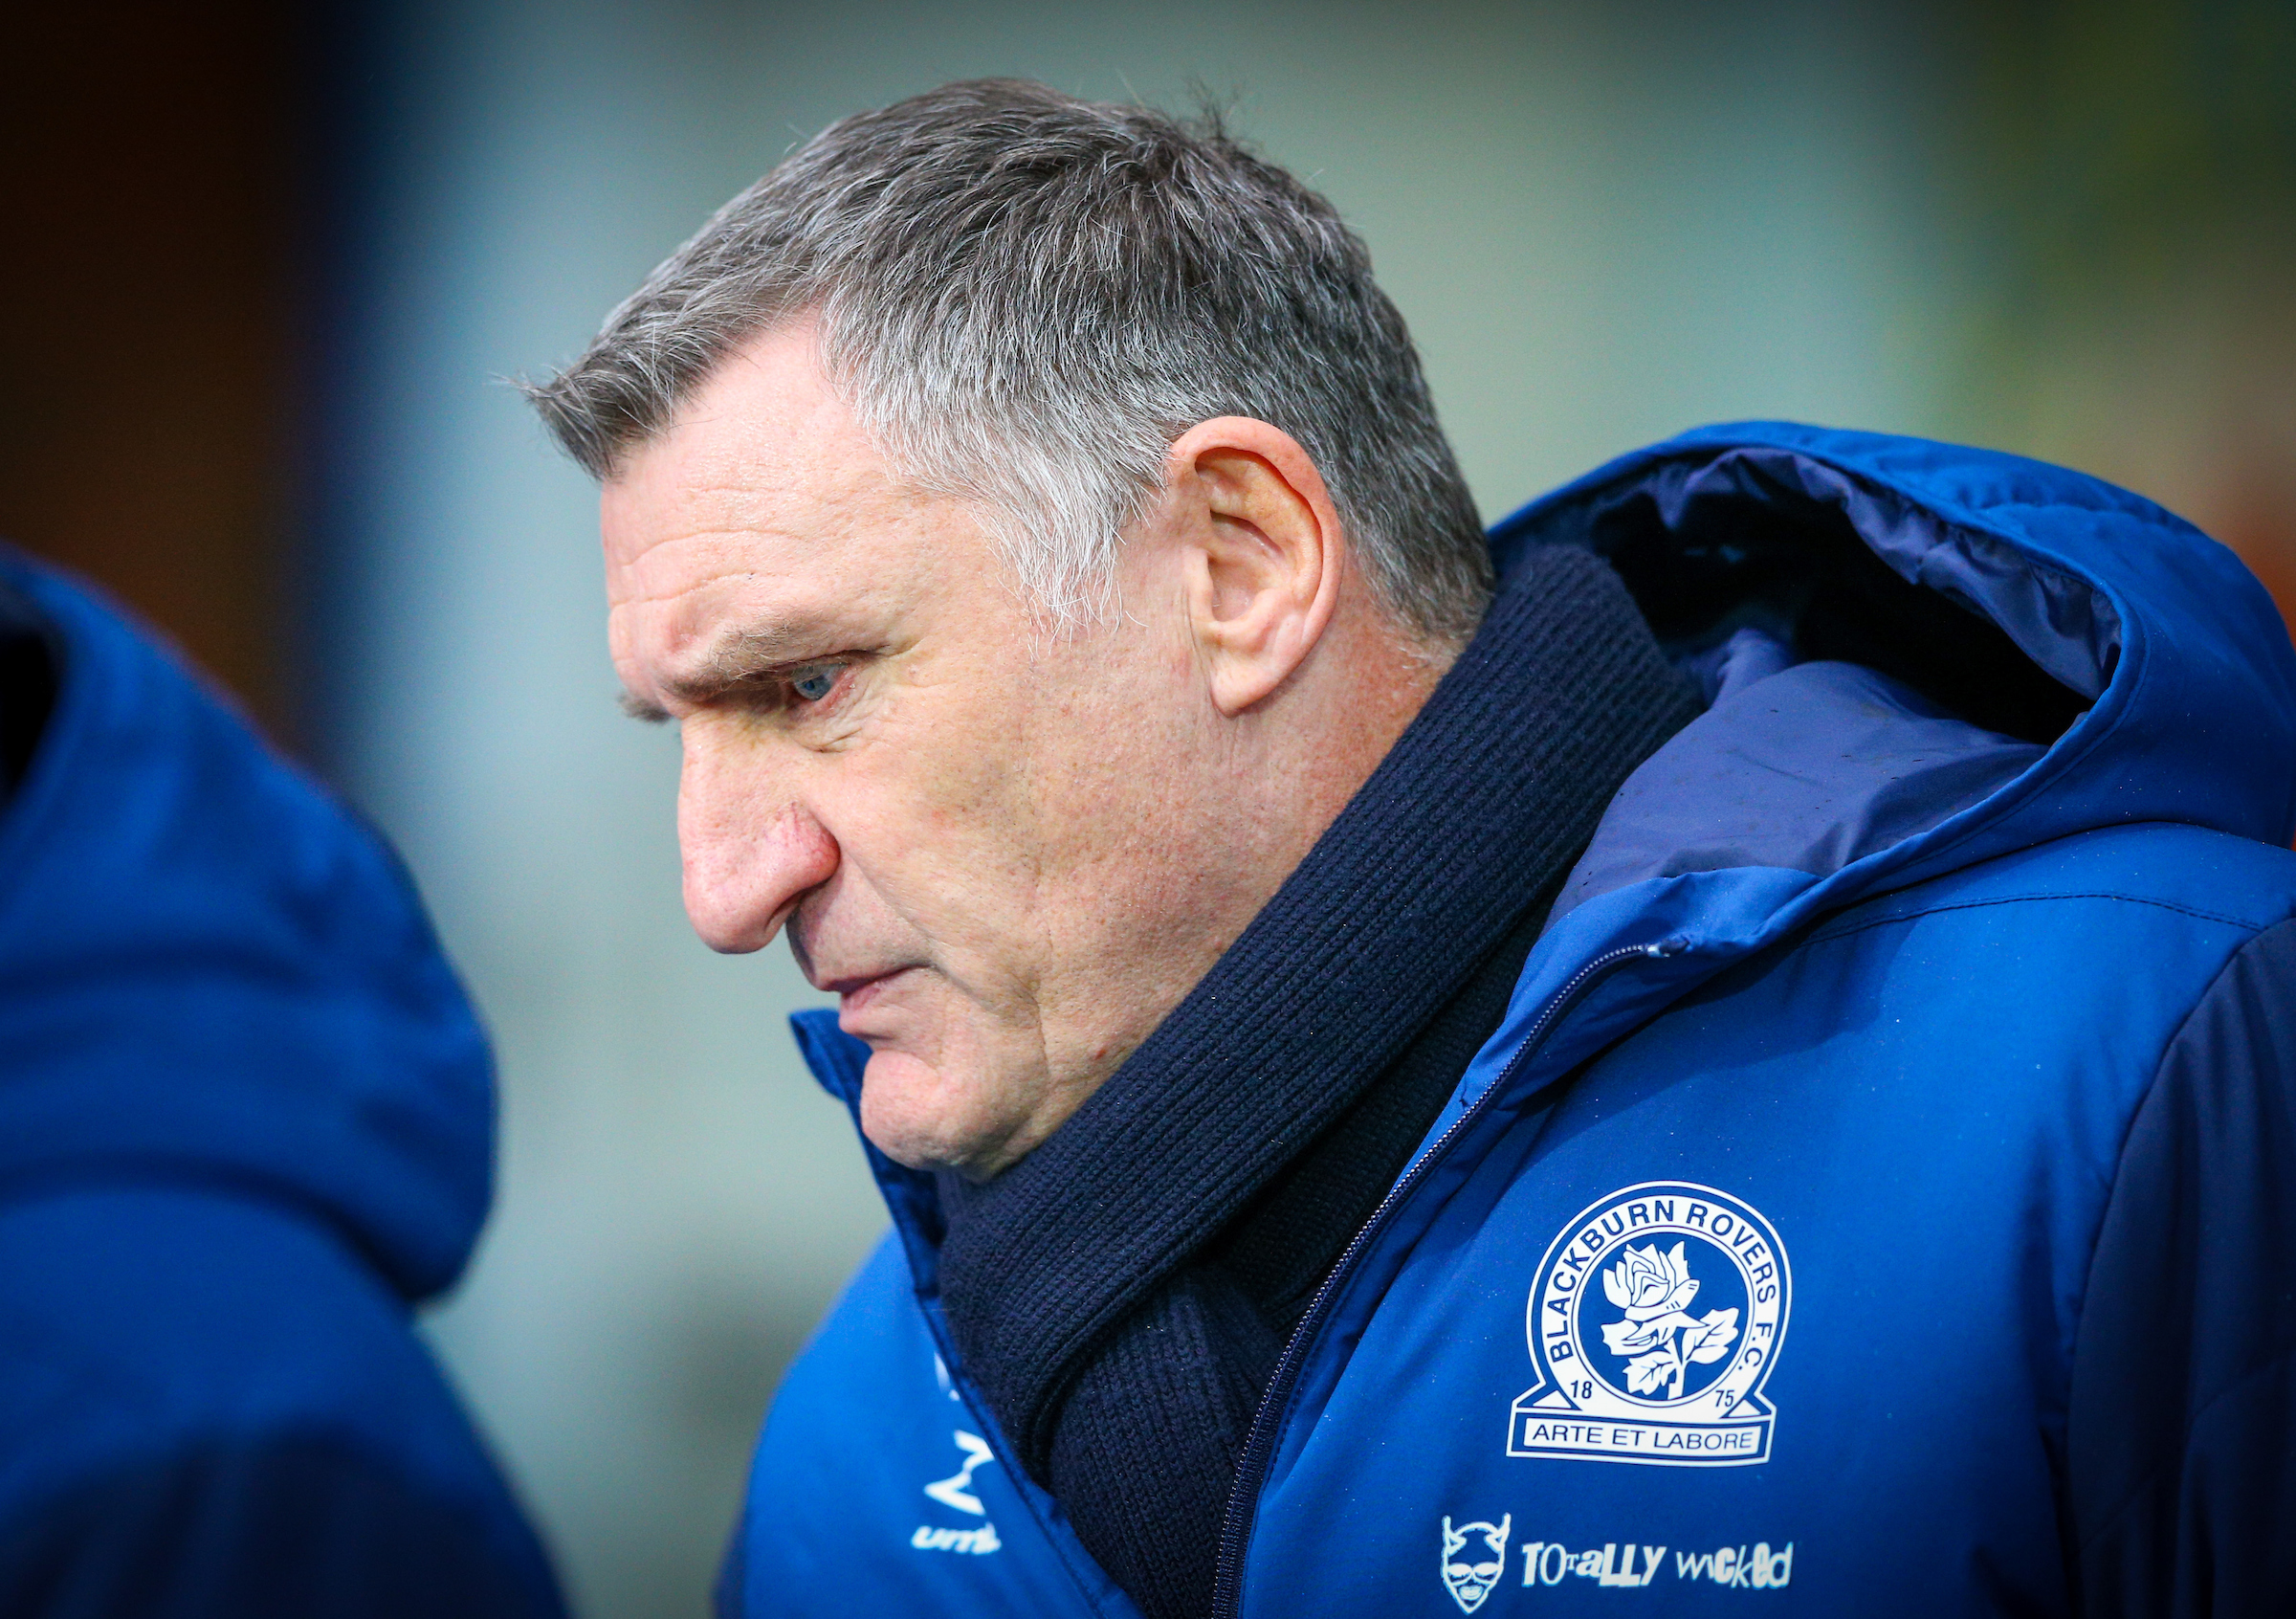 Tony Mowbray has clocked up 100 matches in charge of Rovers